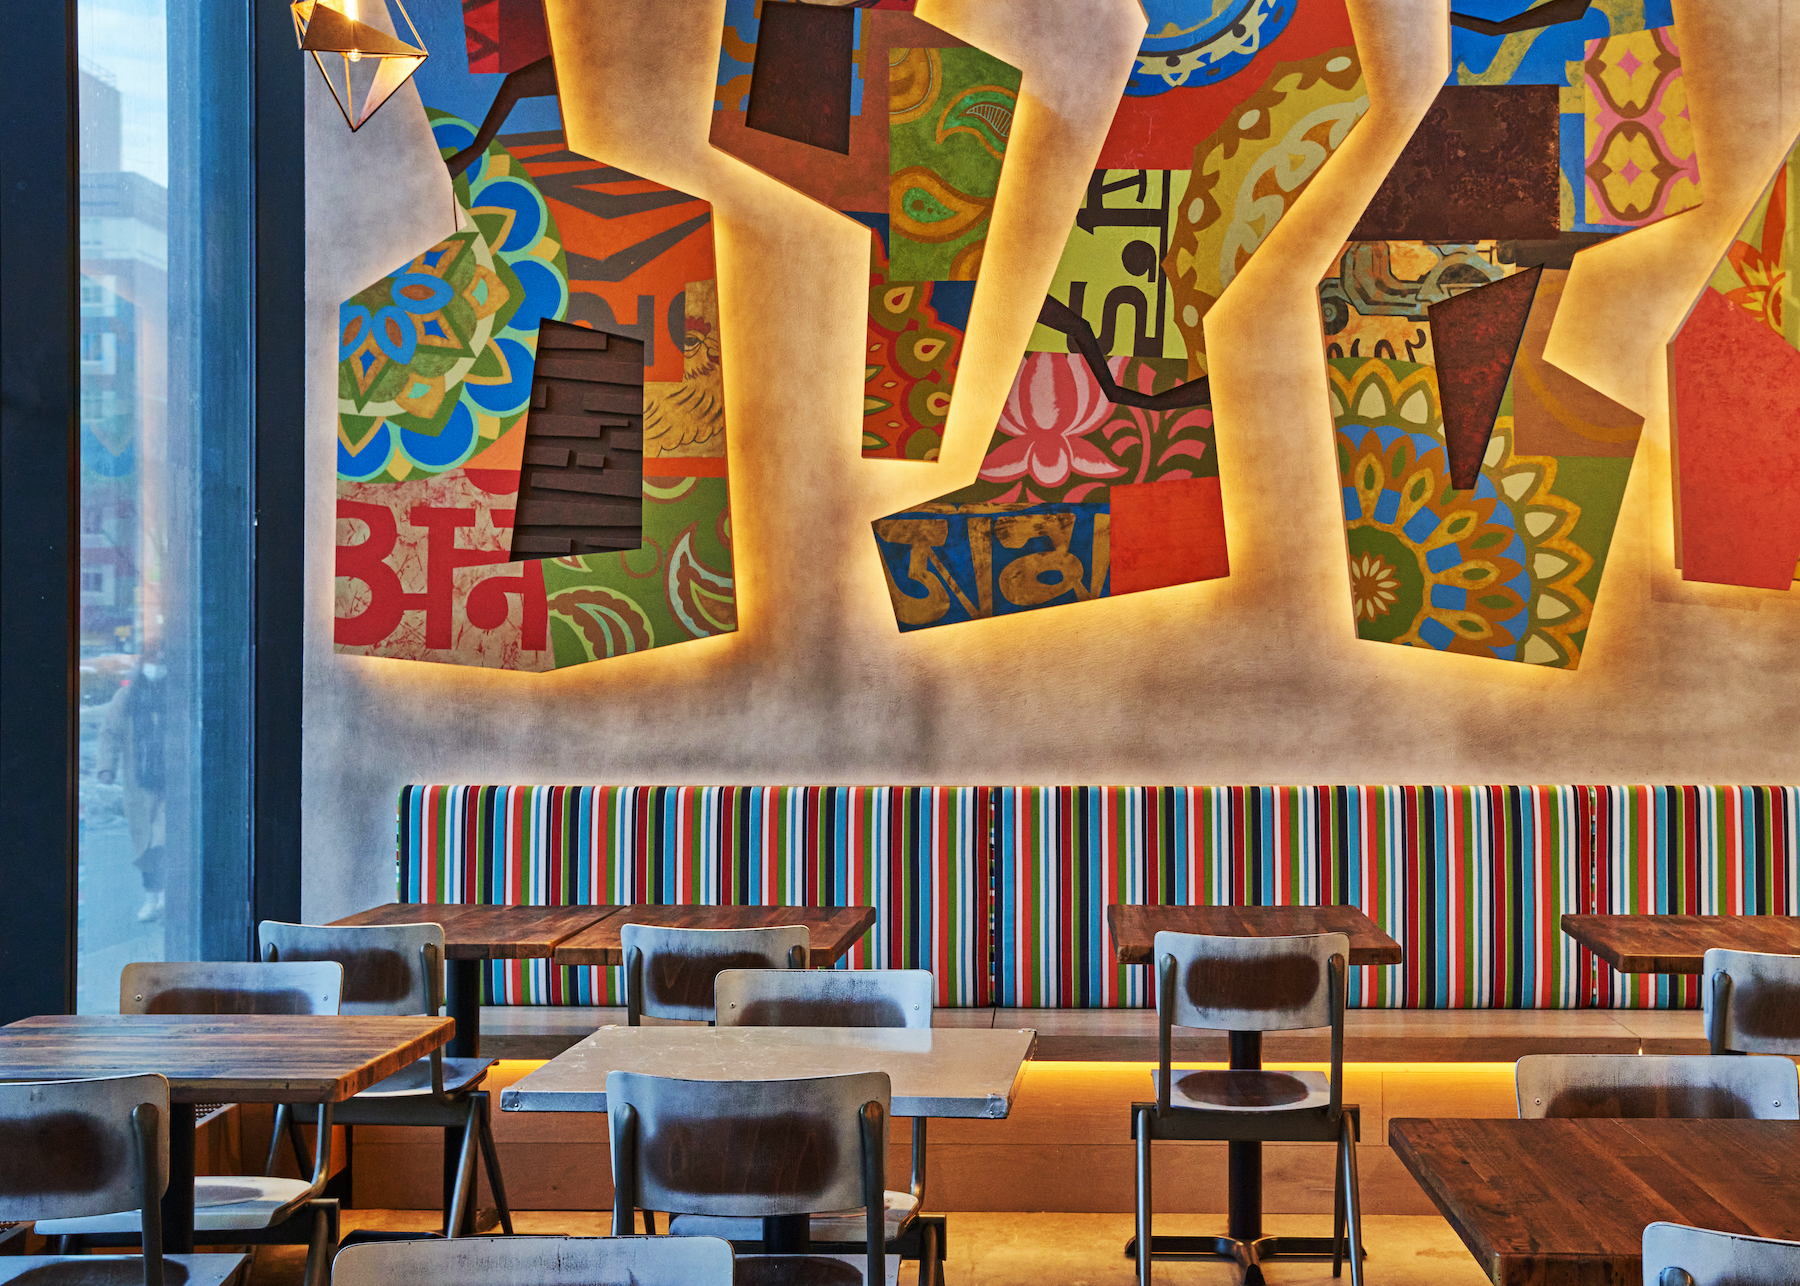 The interior of the restaurant Dhamaka with murals on the wall